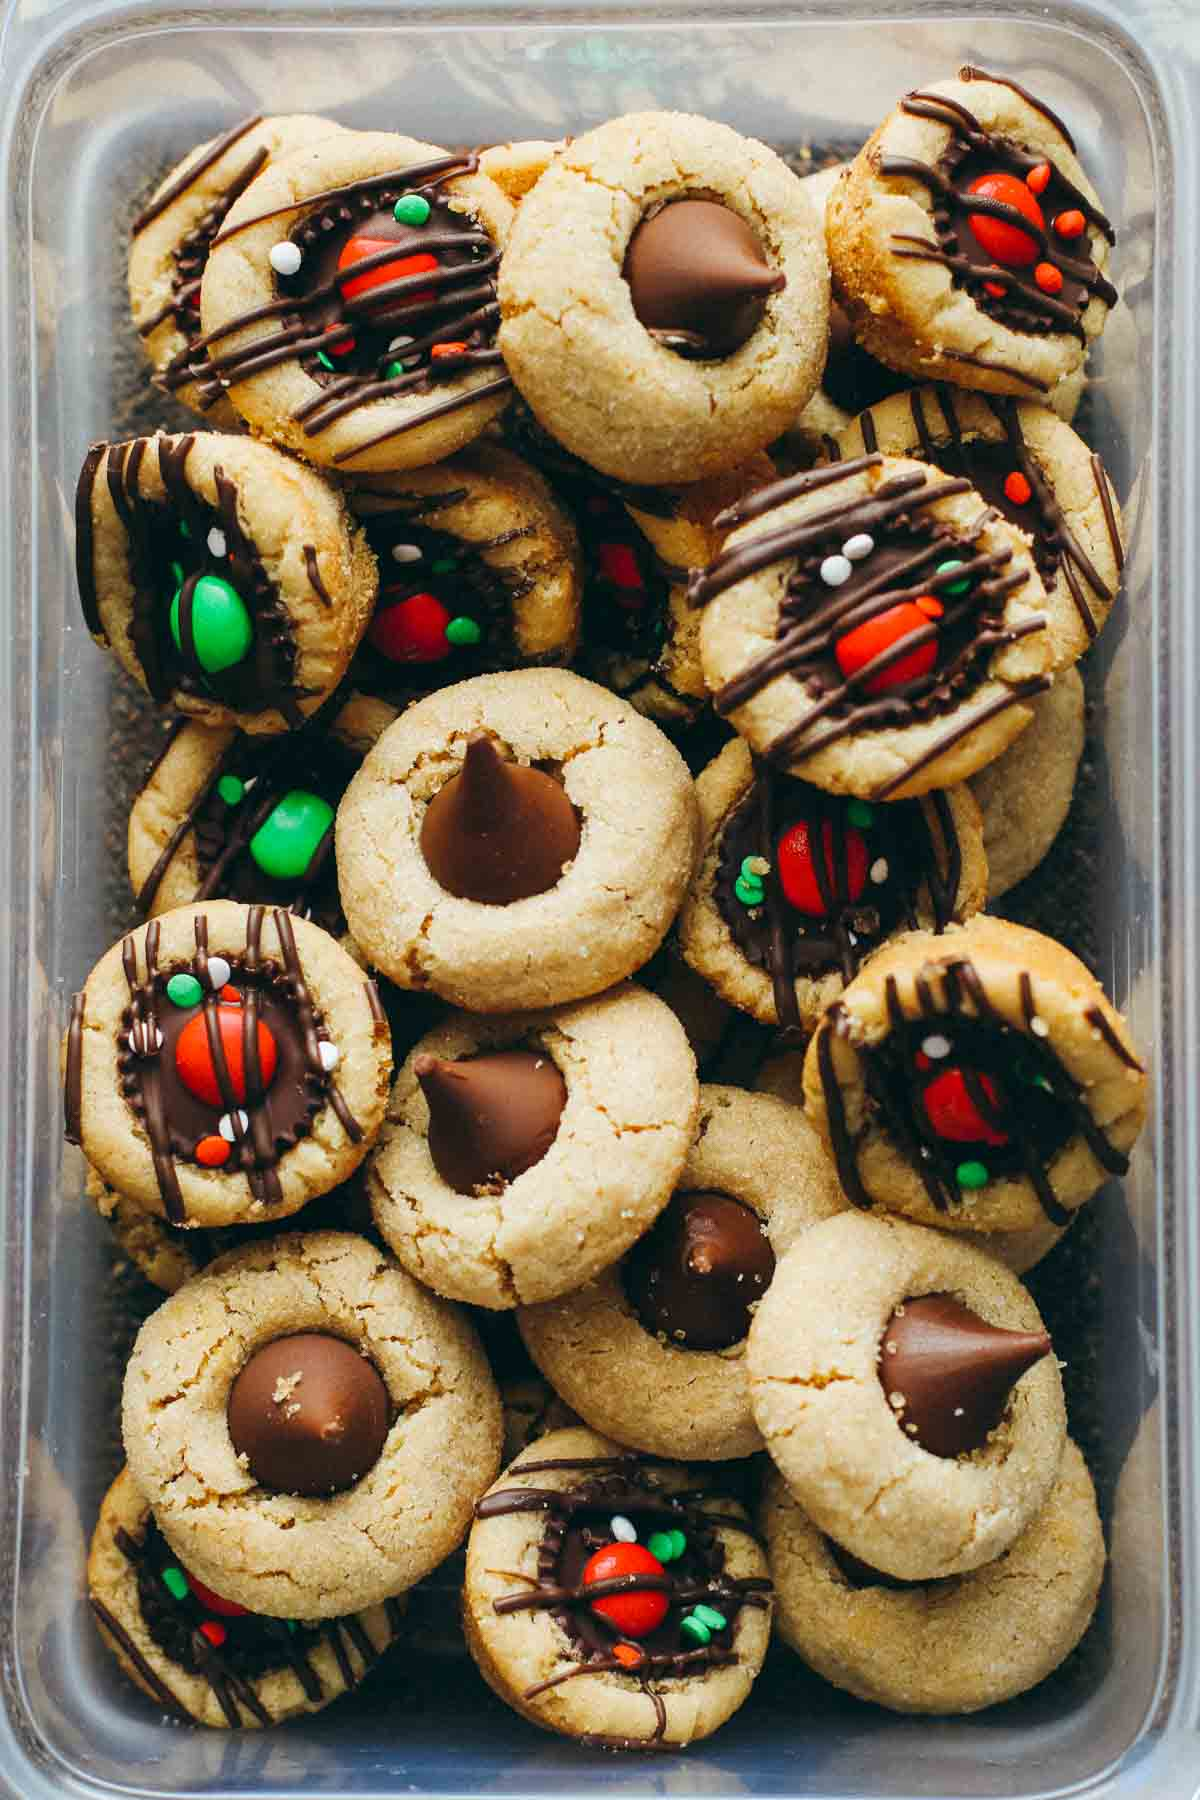 Cookies in a container.